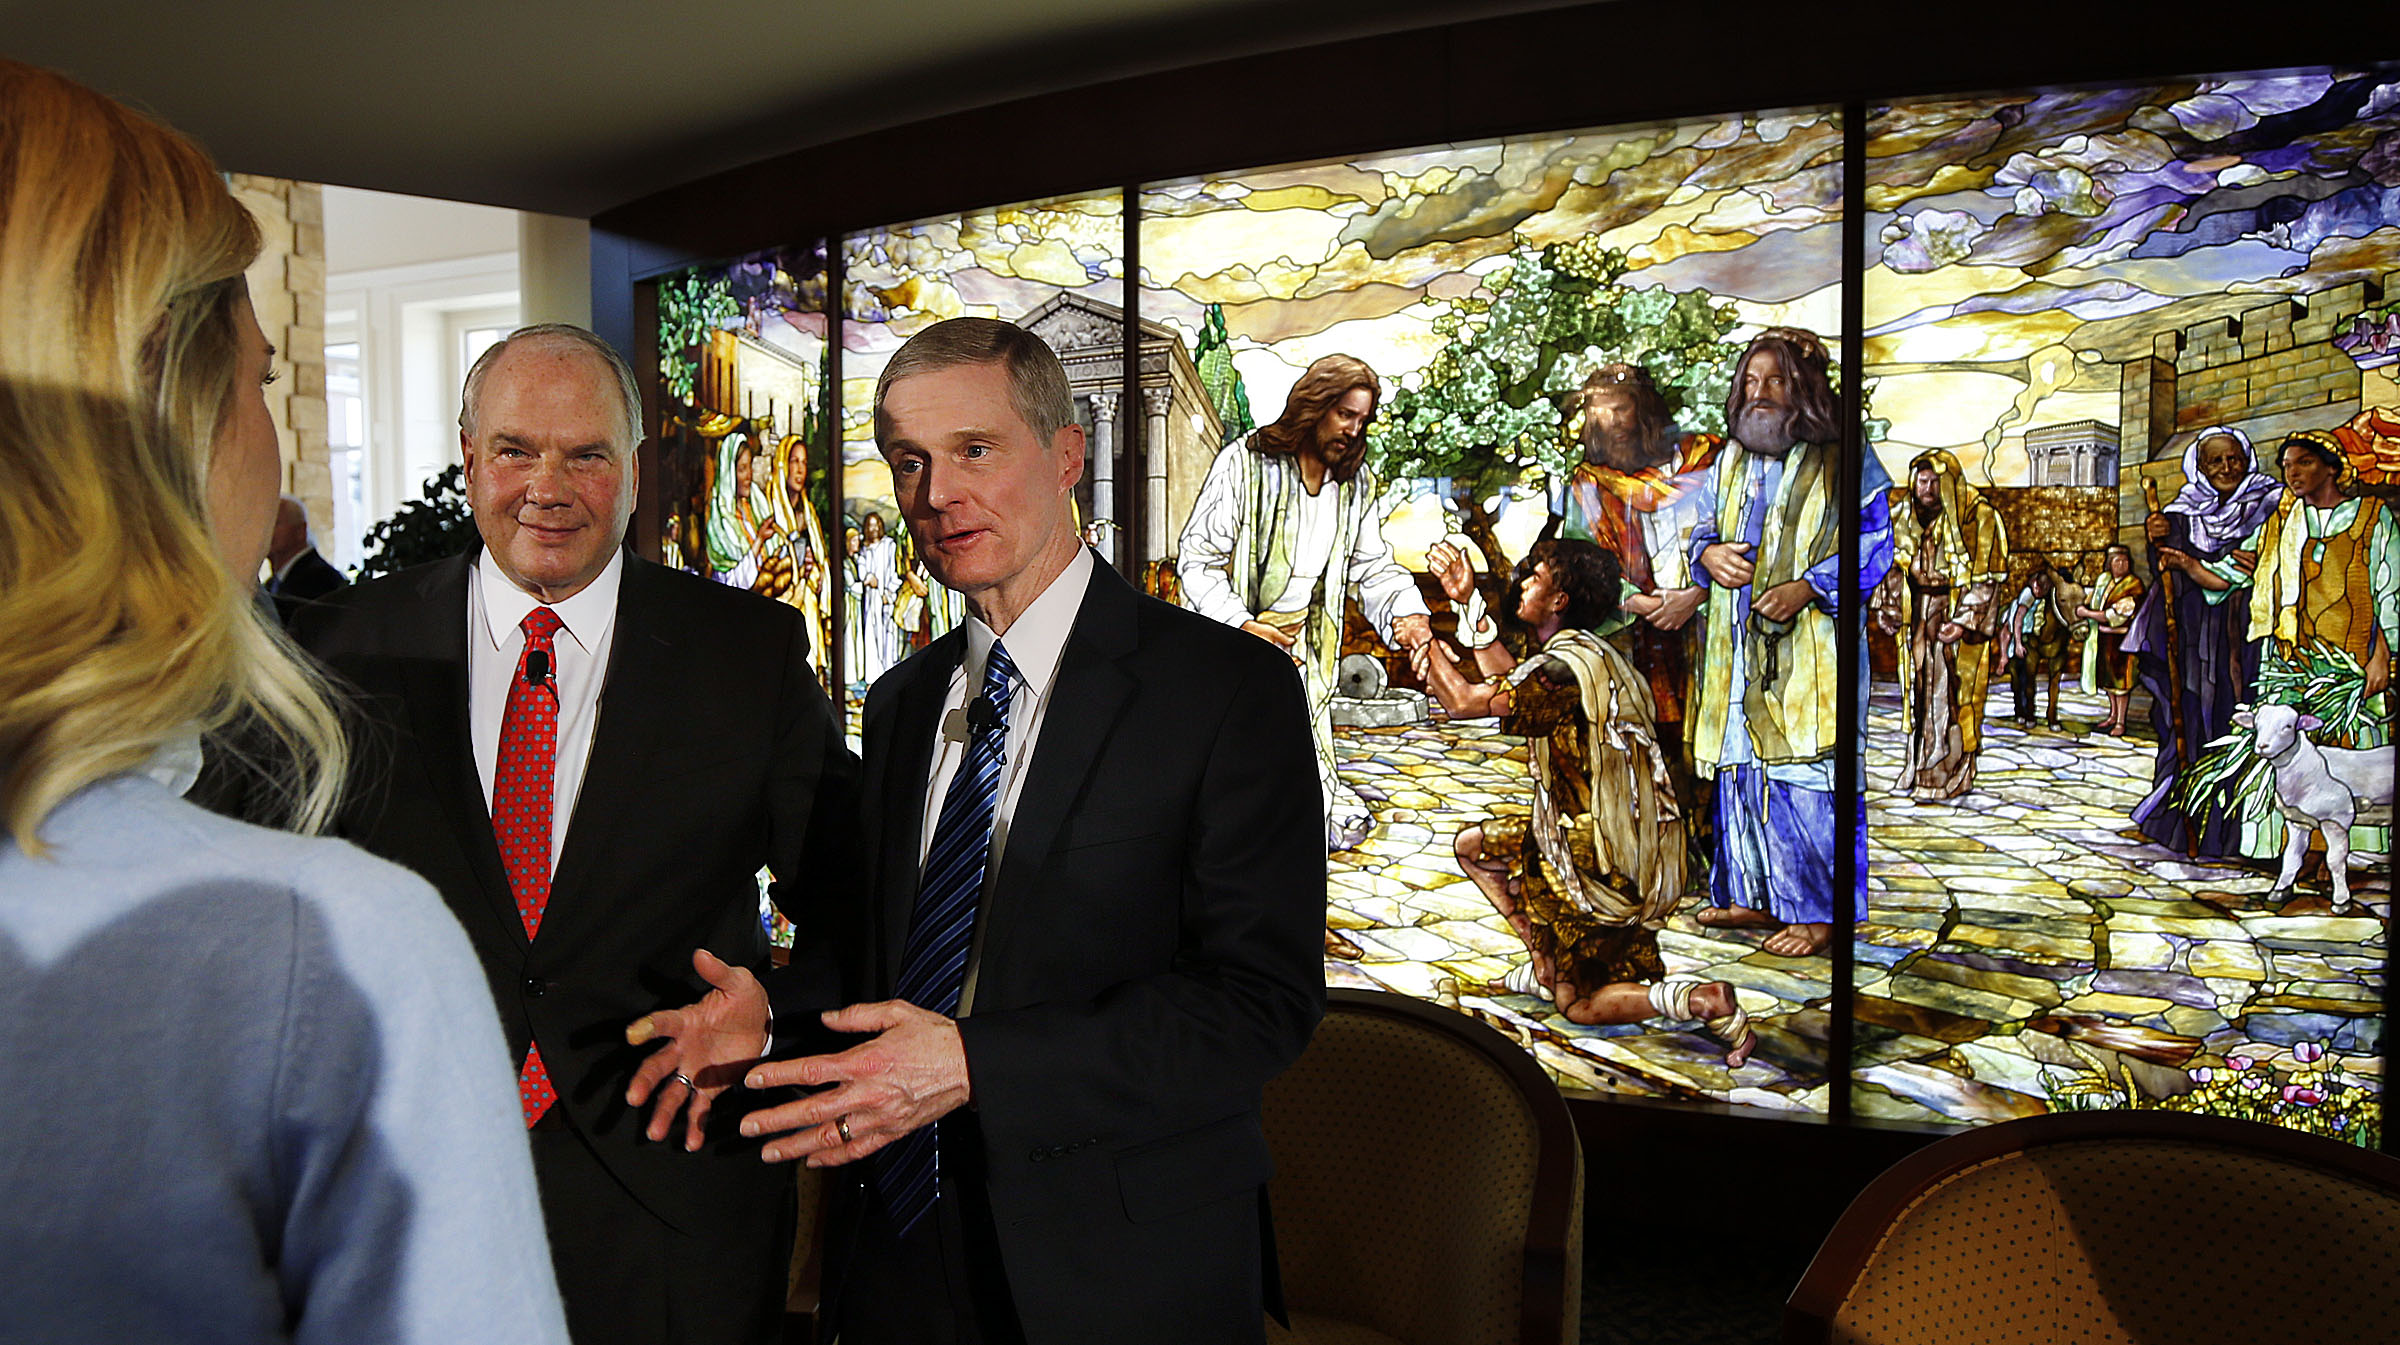 Elder Ronald A. Rasband, left, and Elder David A. Bednar of the Quorum of the Twelve Apostles talk with CNN correspondent Delia Gallagher following a press conference in the Rome Temple Visitor's Center of The Church of Jesus Christ of Latter-day Saints on Monday, Jan. 14, 2019.